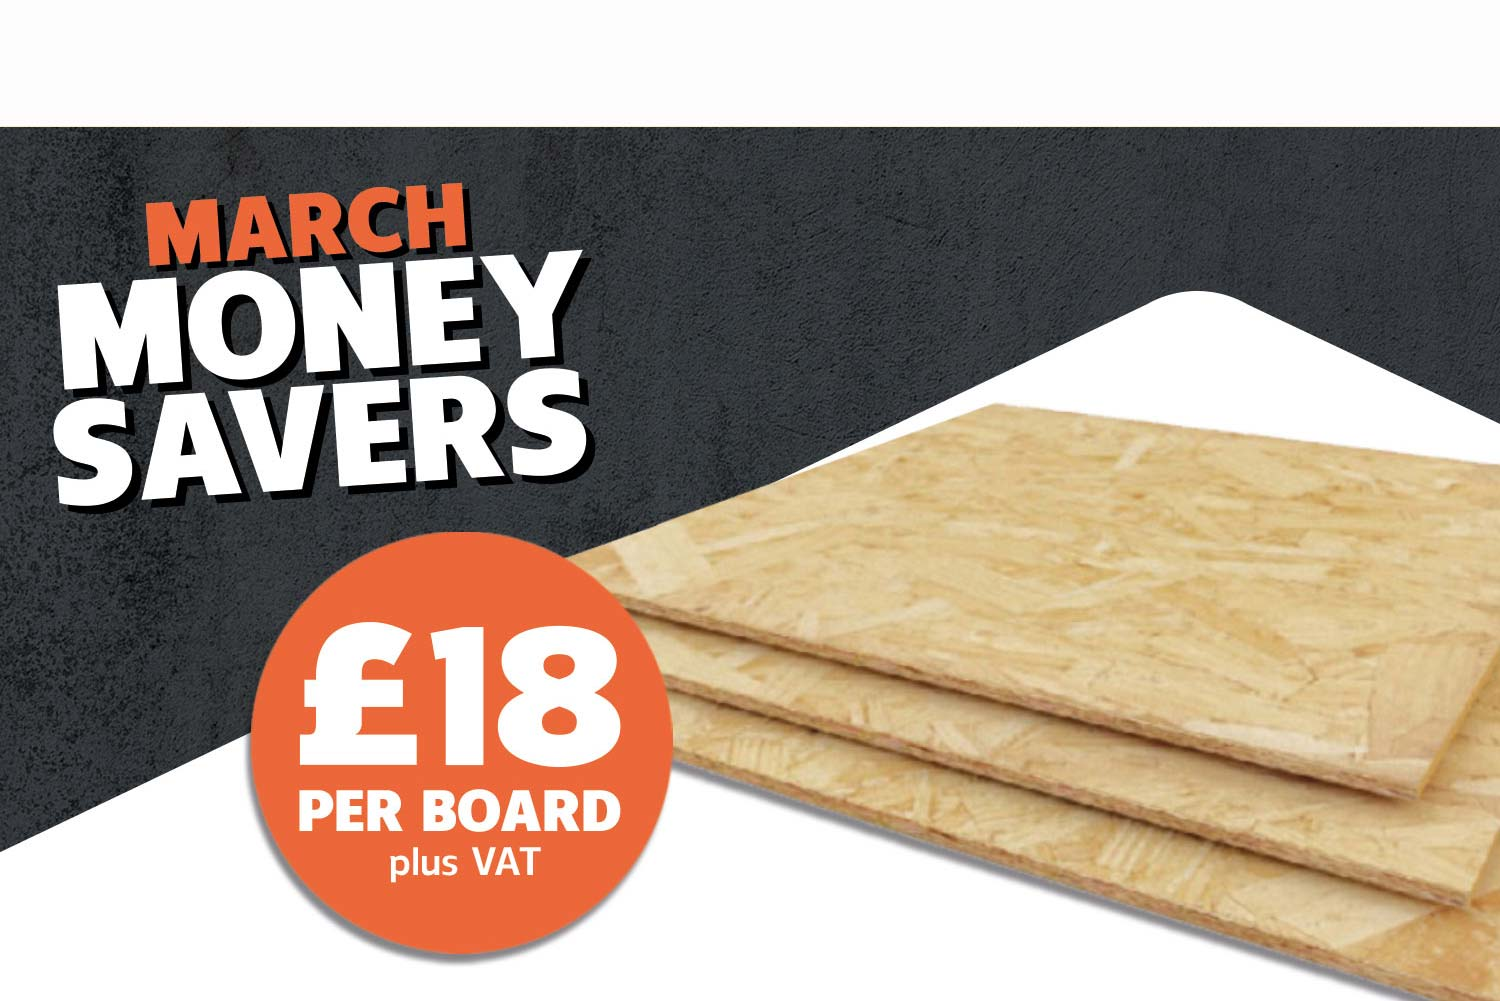 0SB BOARD ONLY £18 + VAT